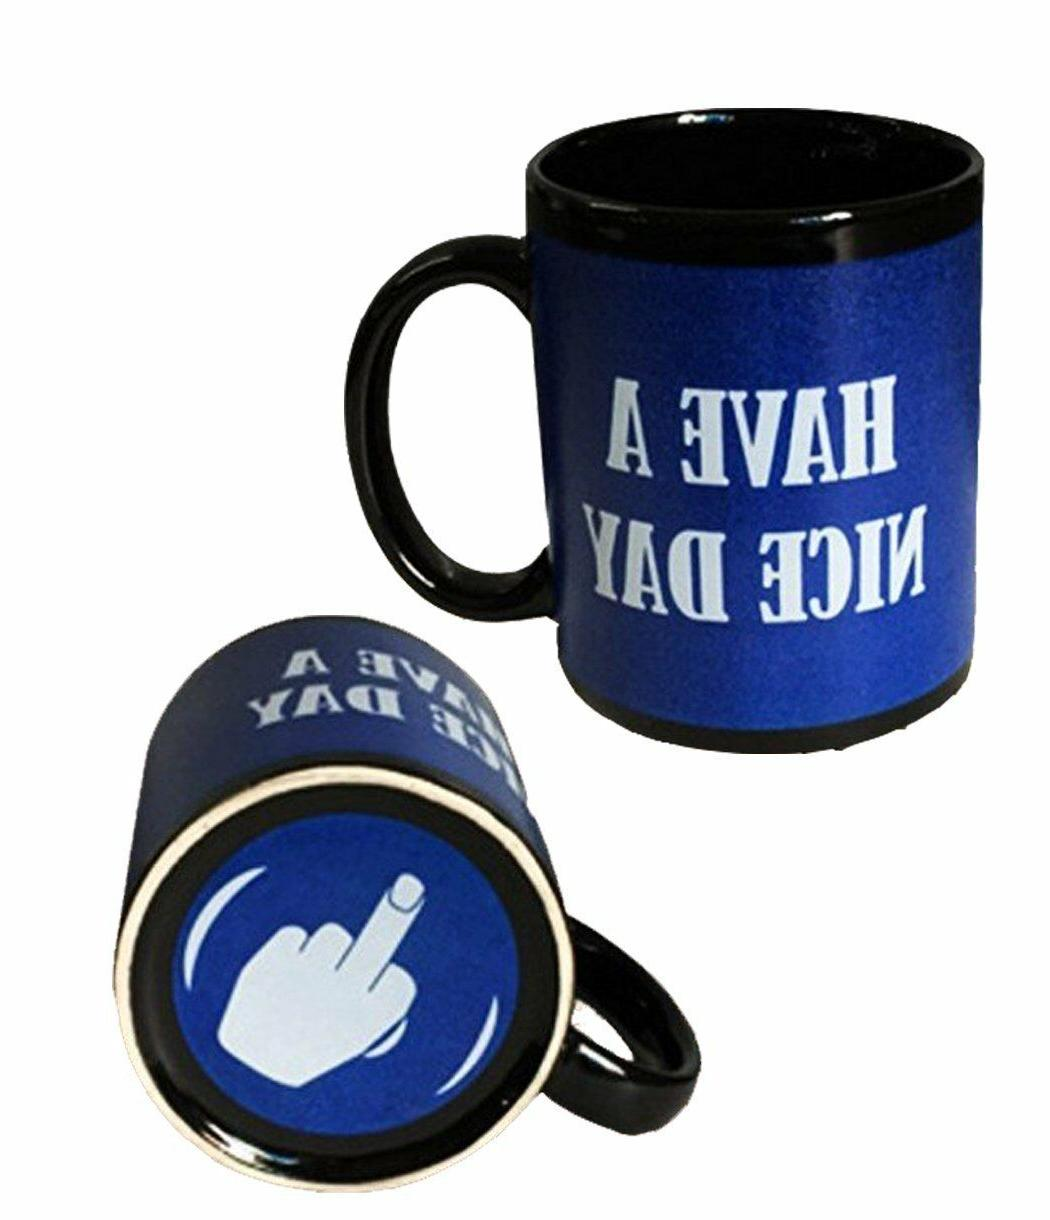 Where To Buy Nice Coffee Mugs Have A Nice Day Coffee Mug Middle Finger